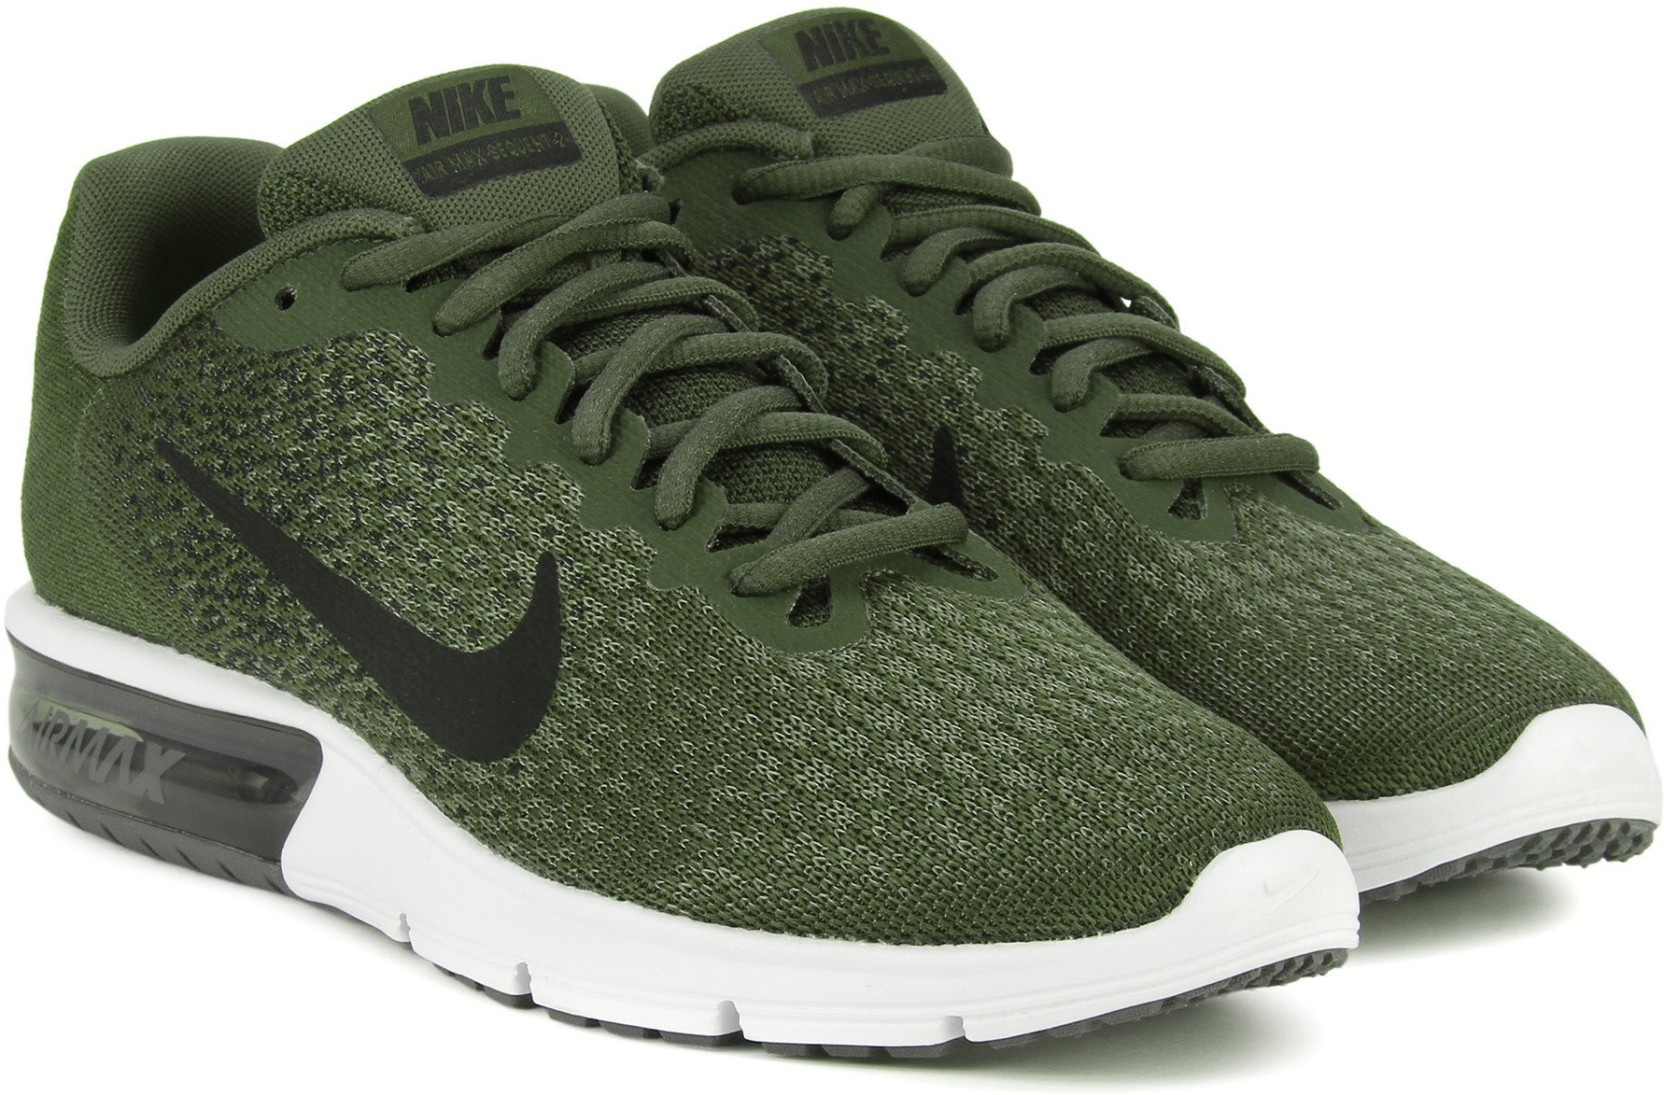 best sneakers 96ab6 92e34 ... clearance nike air max sequent 2 running shoes for men black green  17990 a3a87